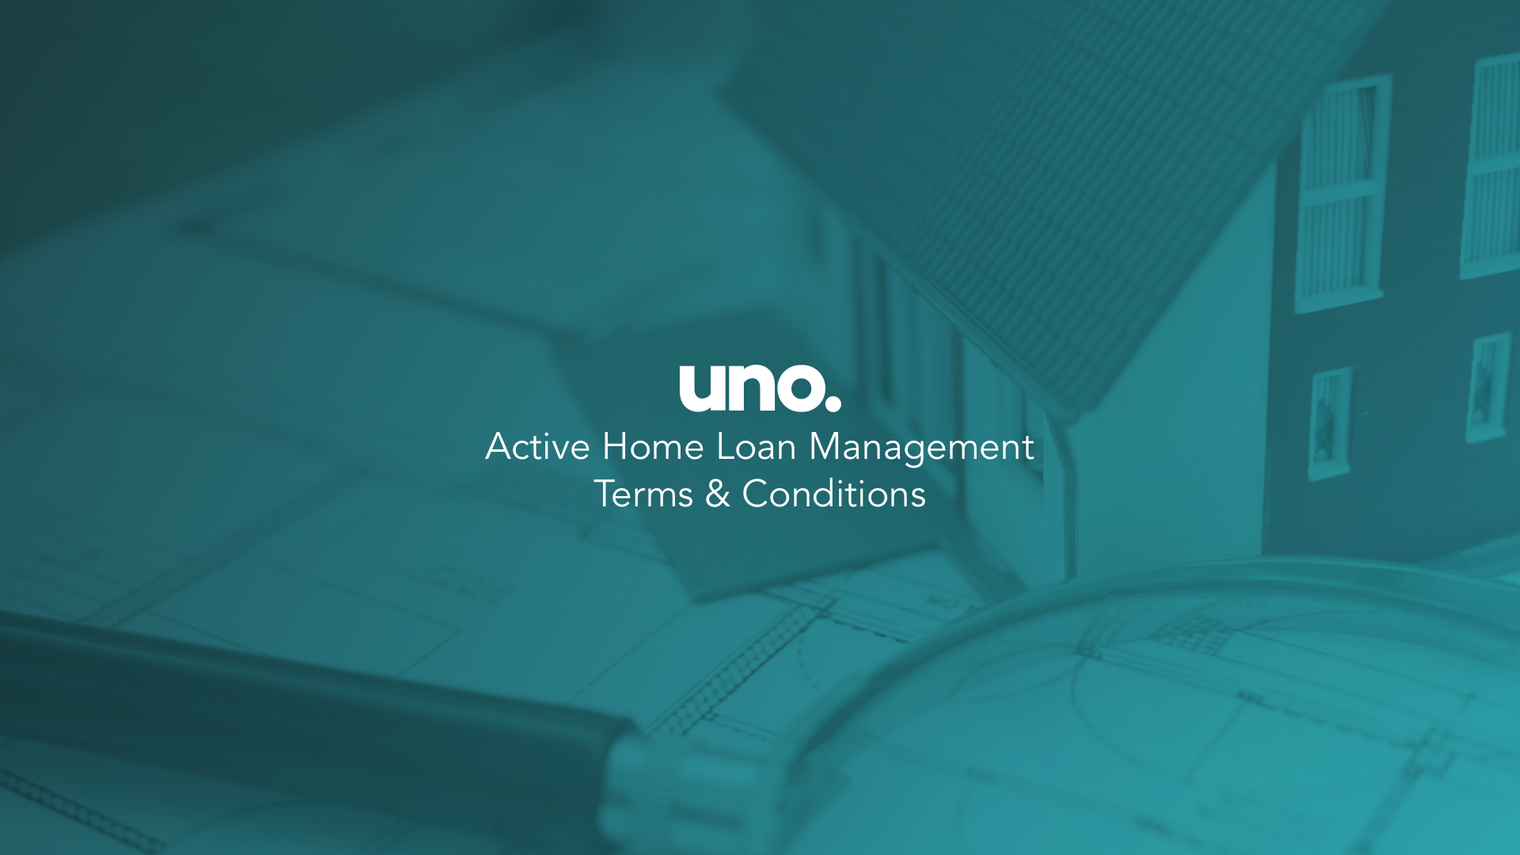 Active Home Loan Management Terms & Conditions